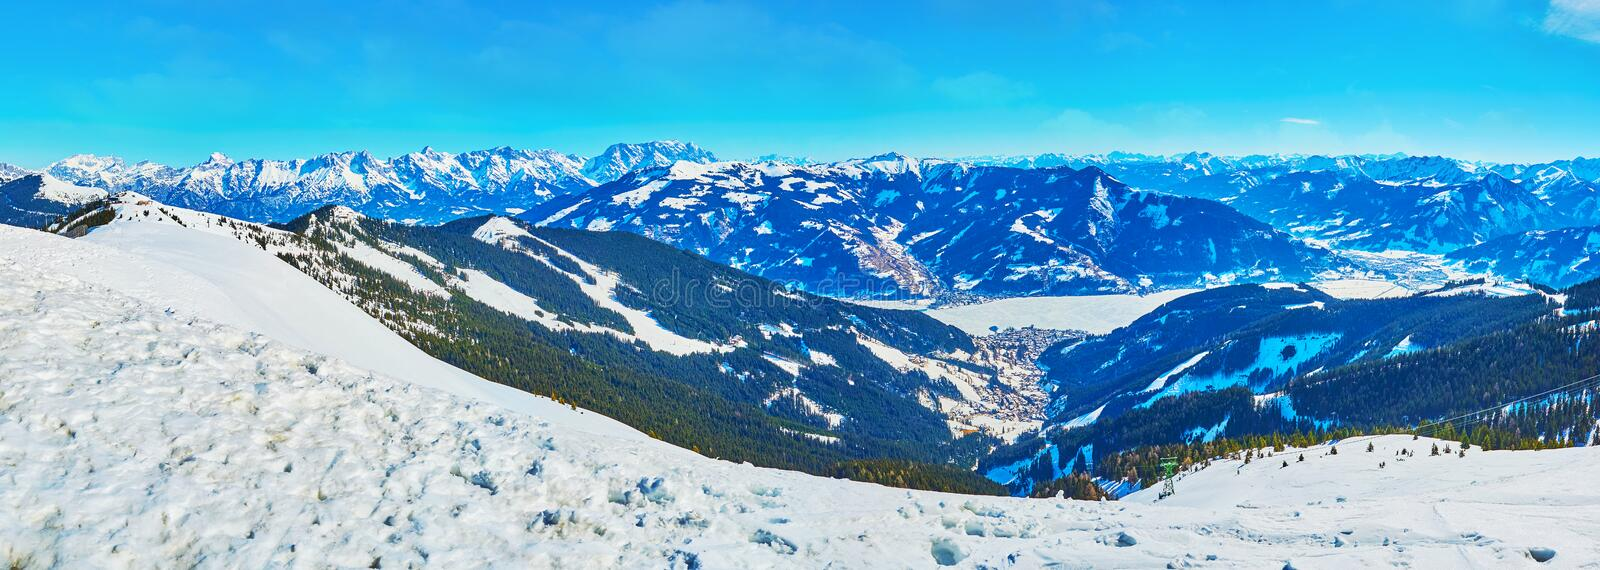 Mountain landscape with highland Zeller See, Schmitten mount, Zell am See, Austria royalty free stock photography